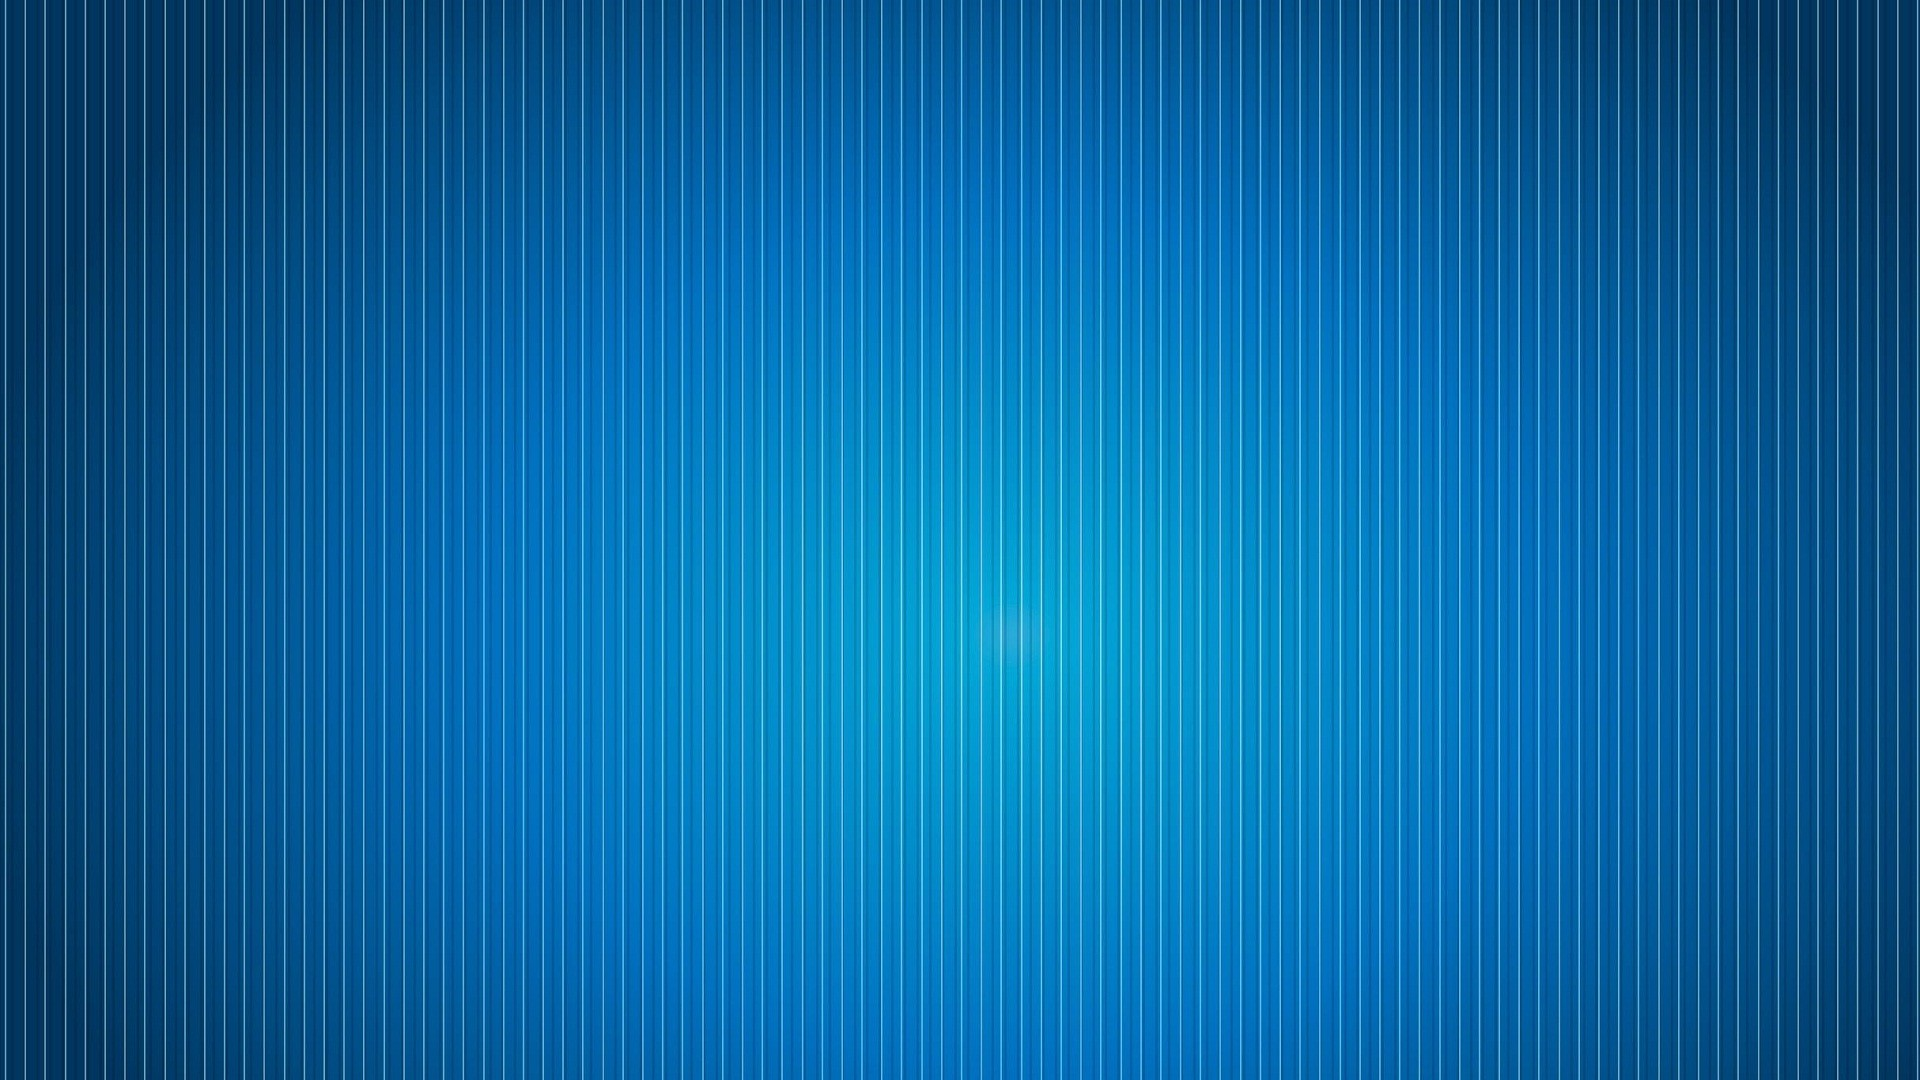 Blue plain background wide computer wallpapers